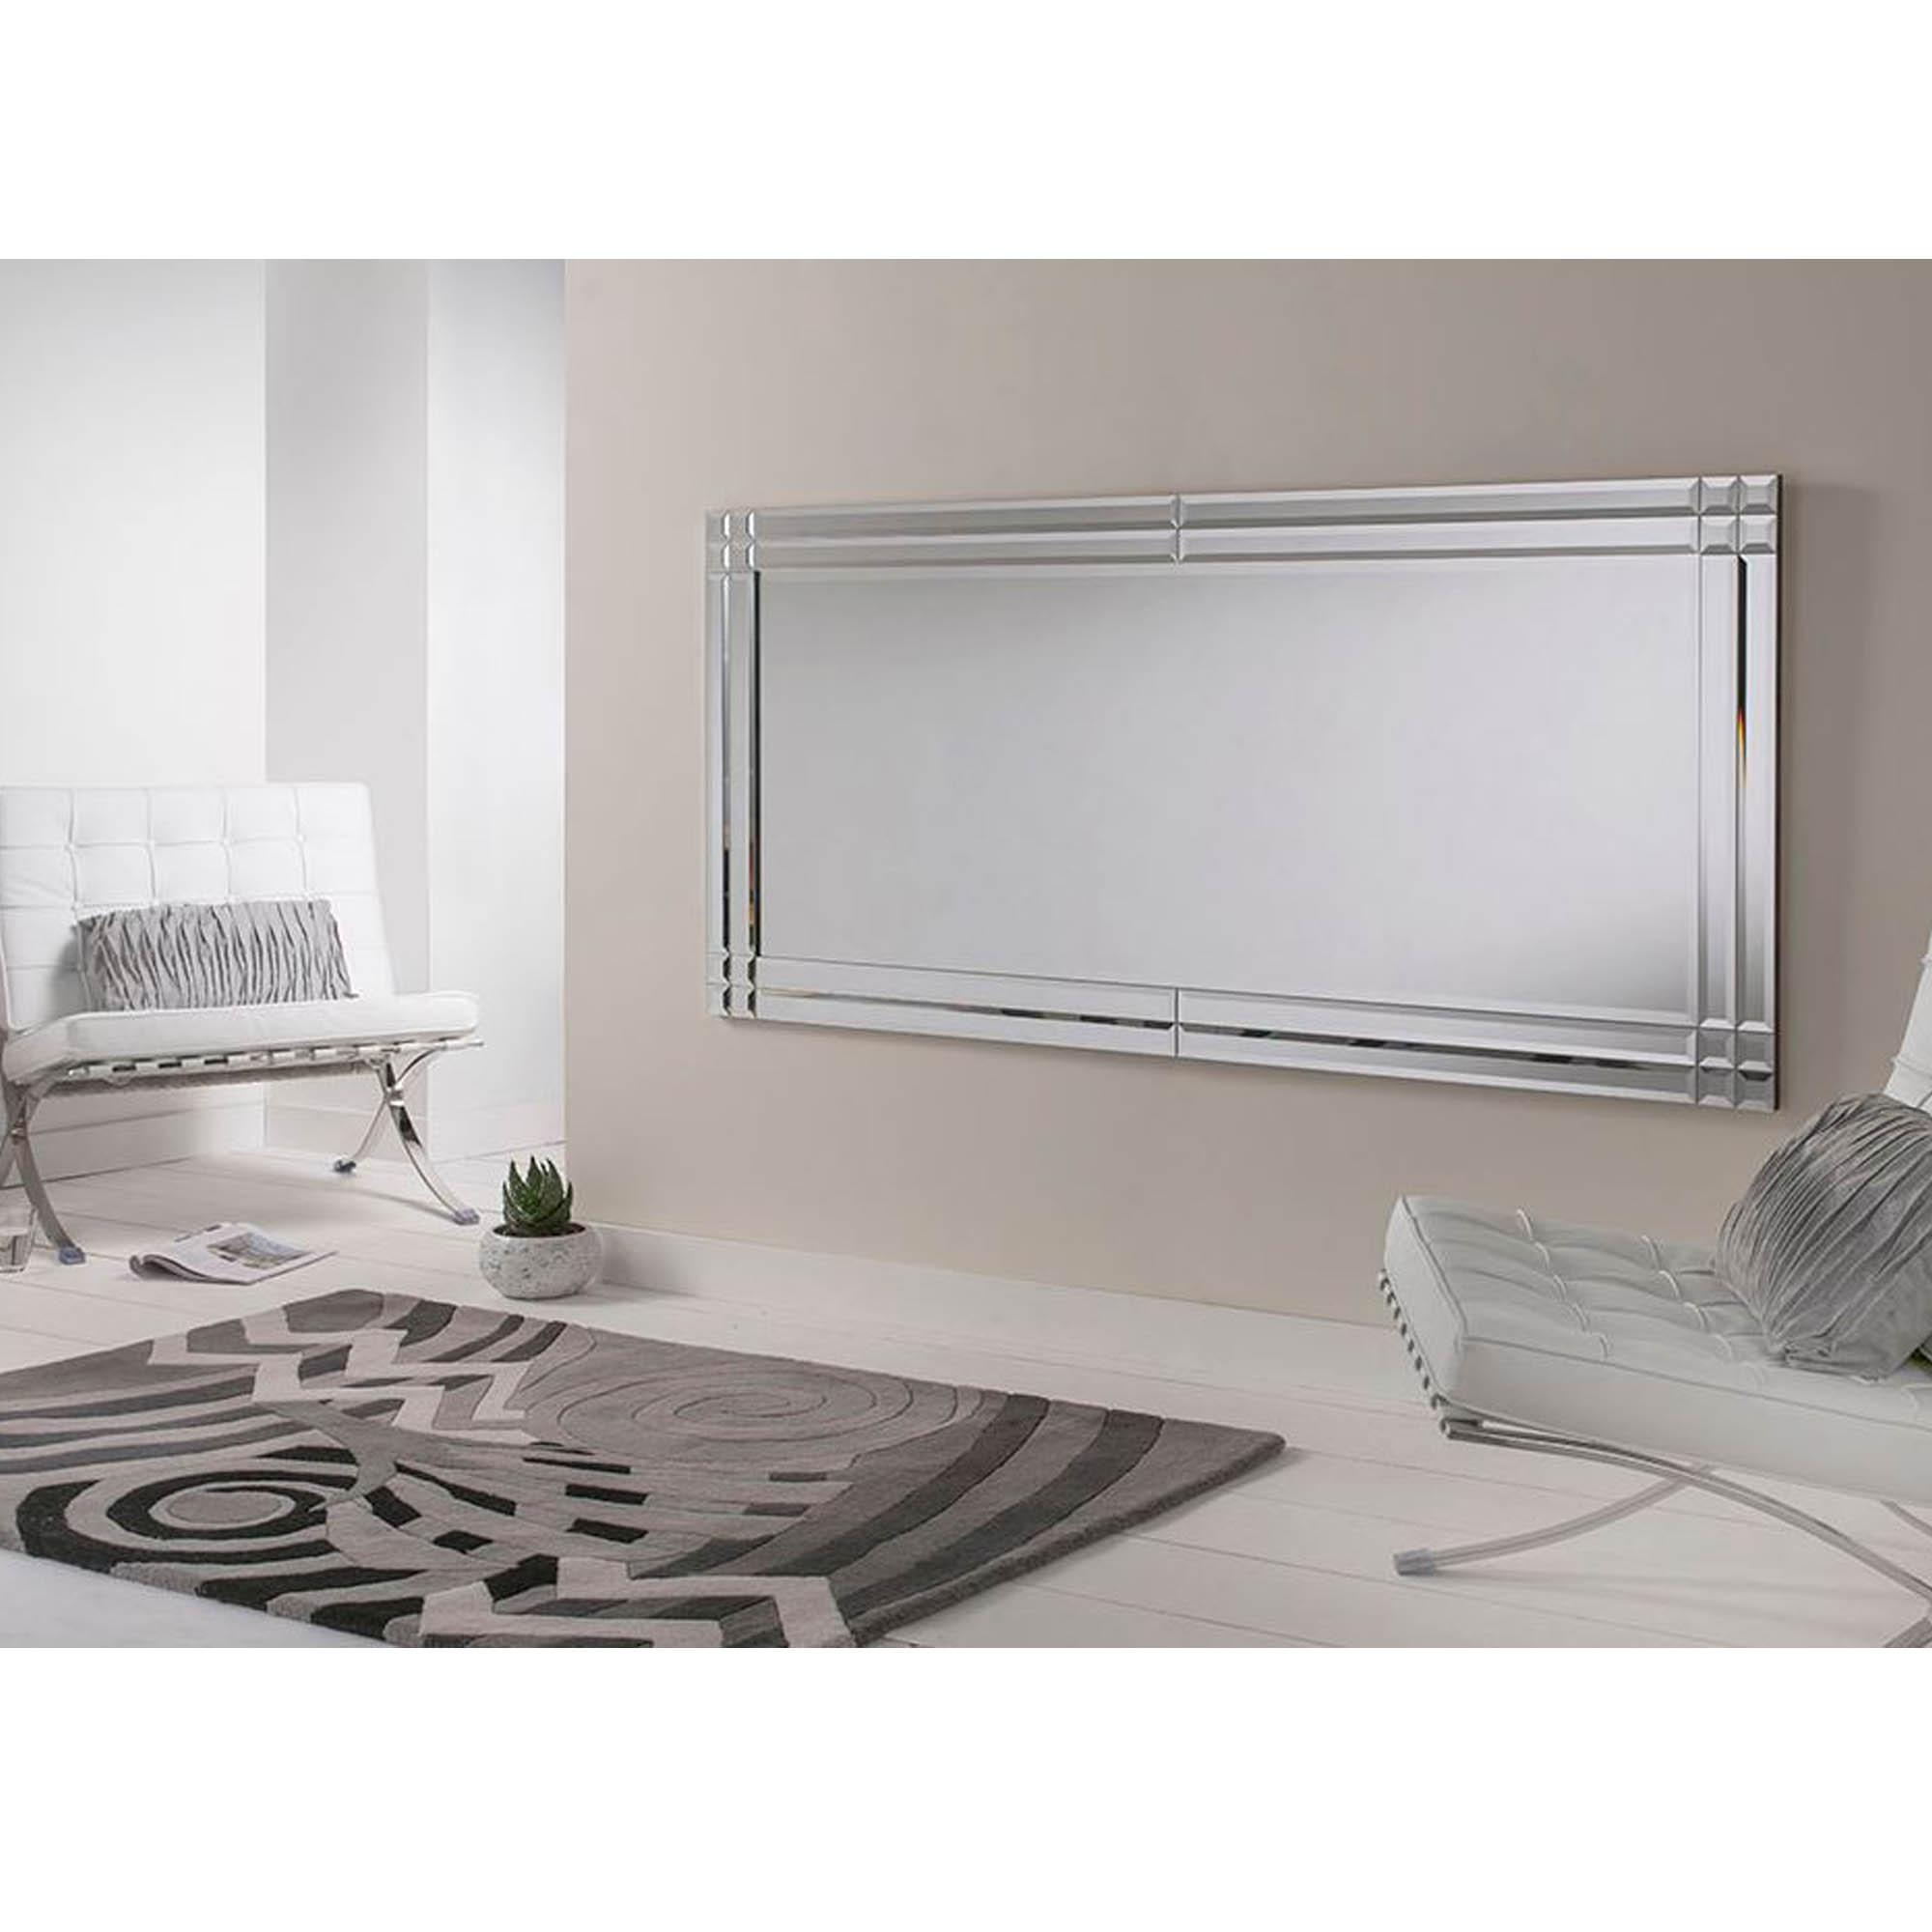 Large Bevelled Rectangular Wall Mirror Pertaining To 2020 Large Wall Mirrors (View 11 of 20)